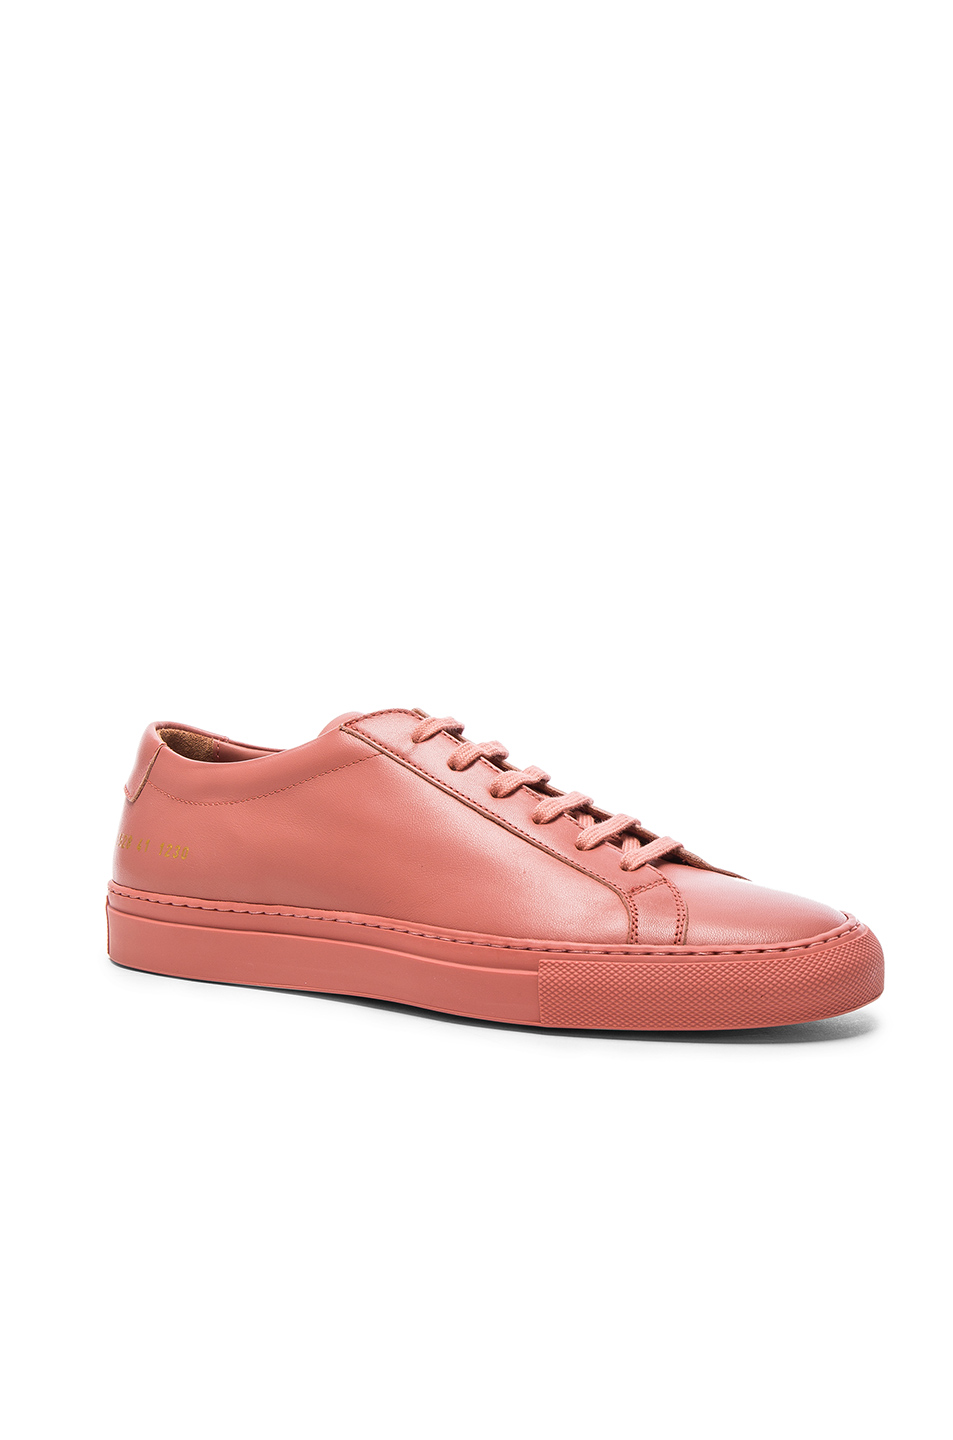 Common Projects Leather Original Achilles Low in Pink